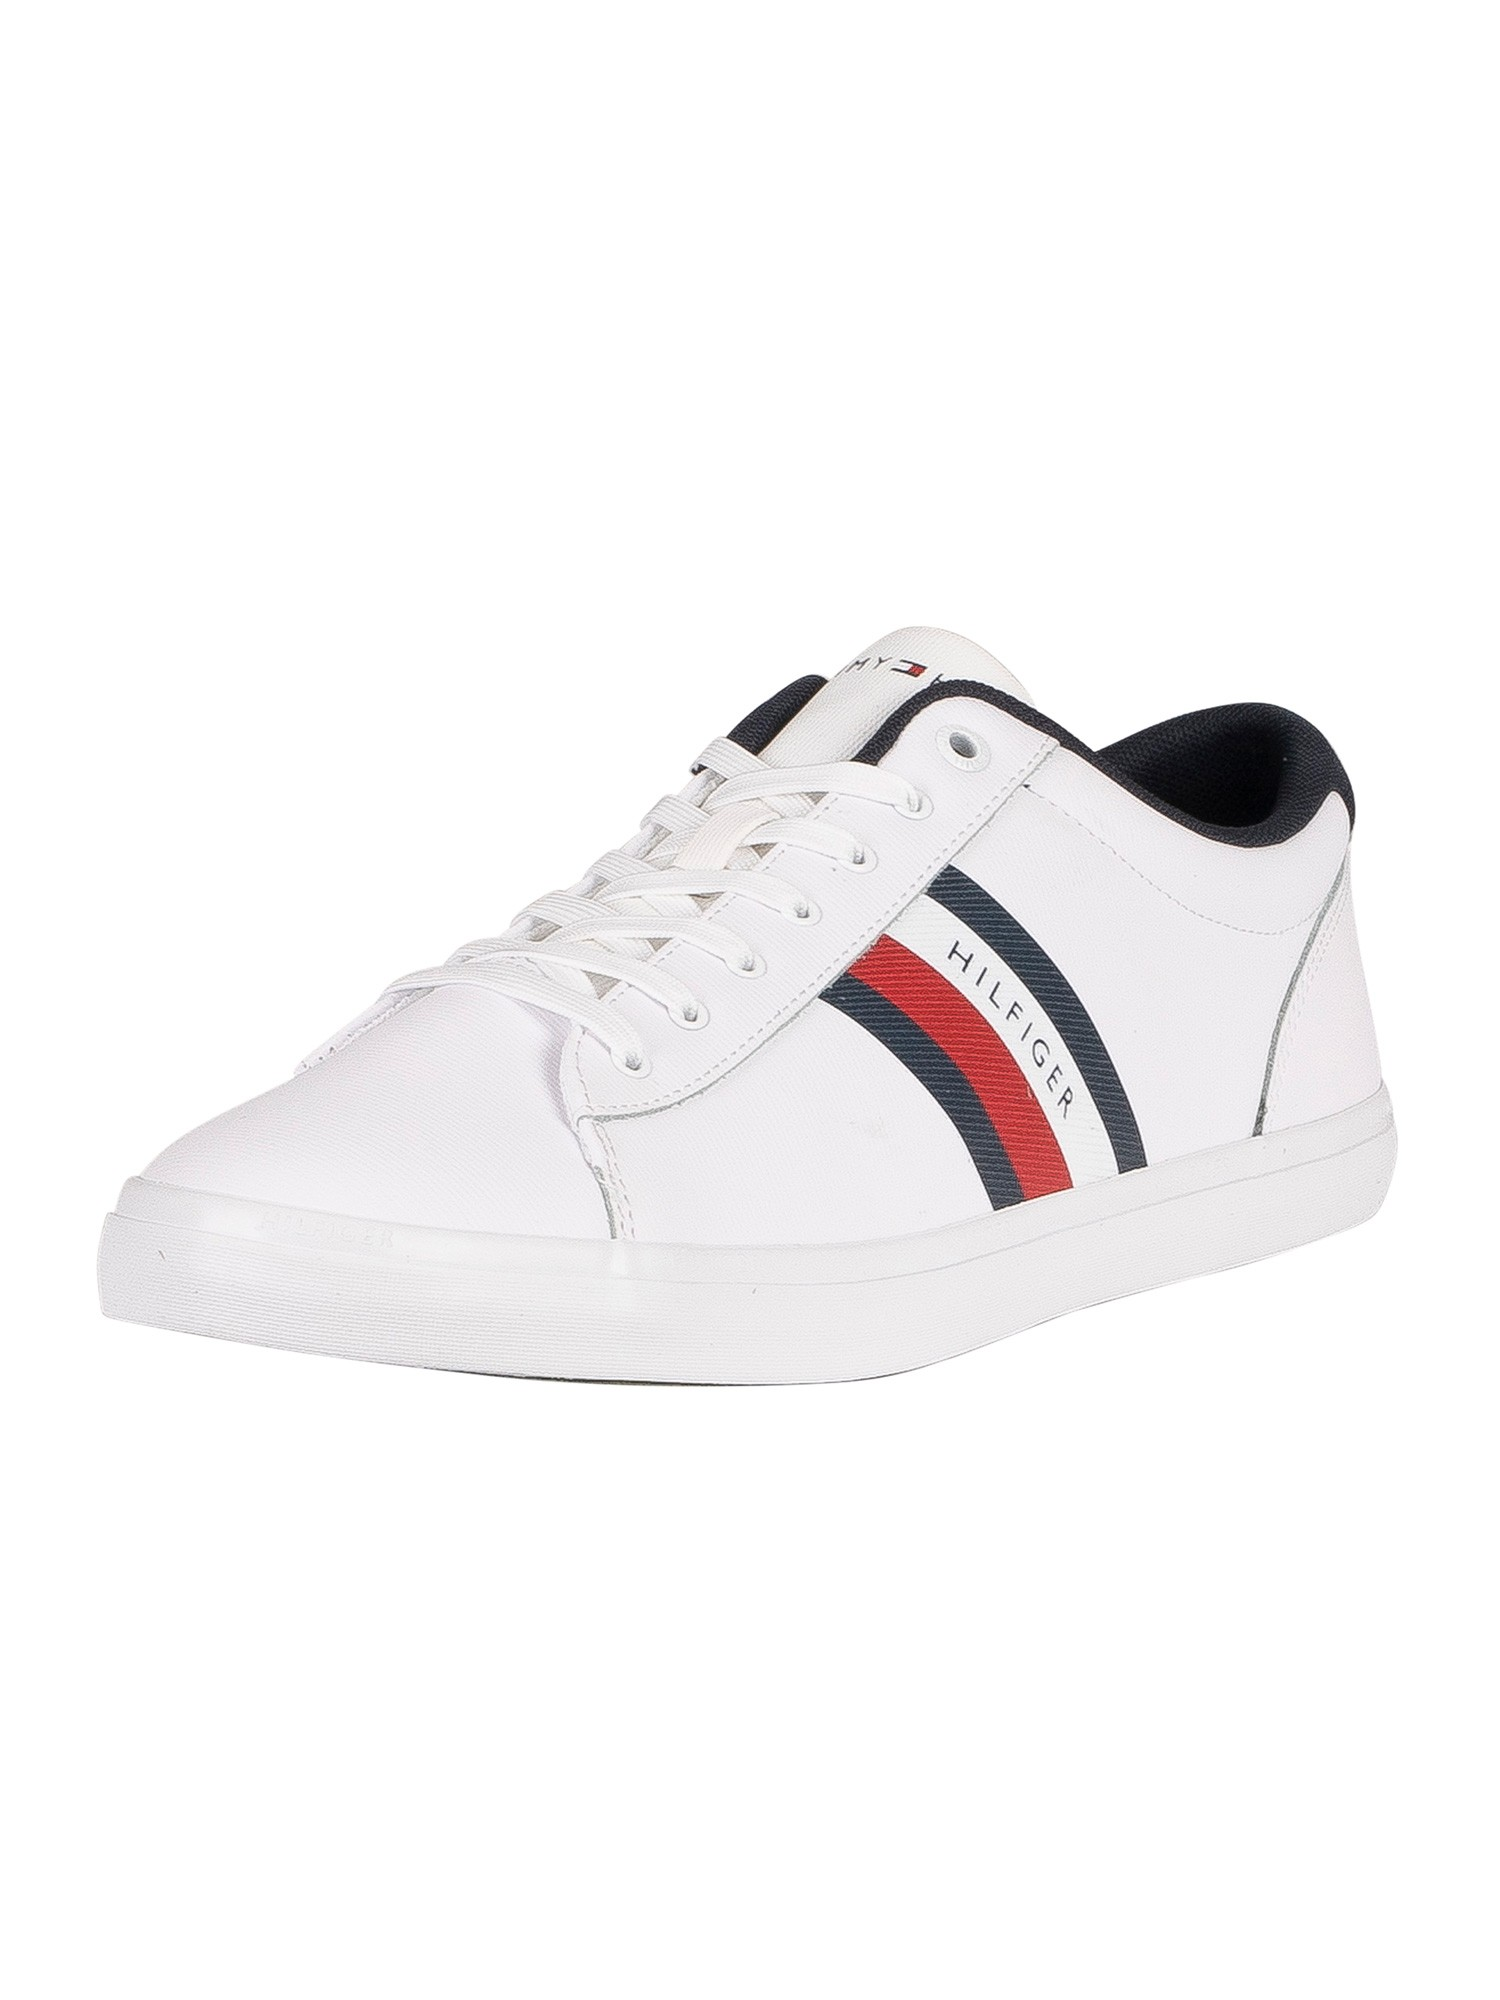 Essential Leather Stripes Trainers